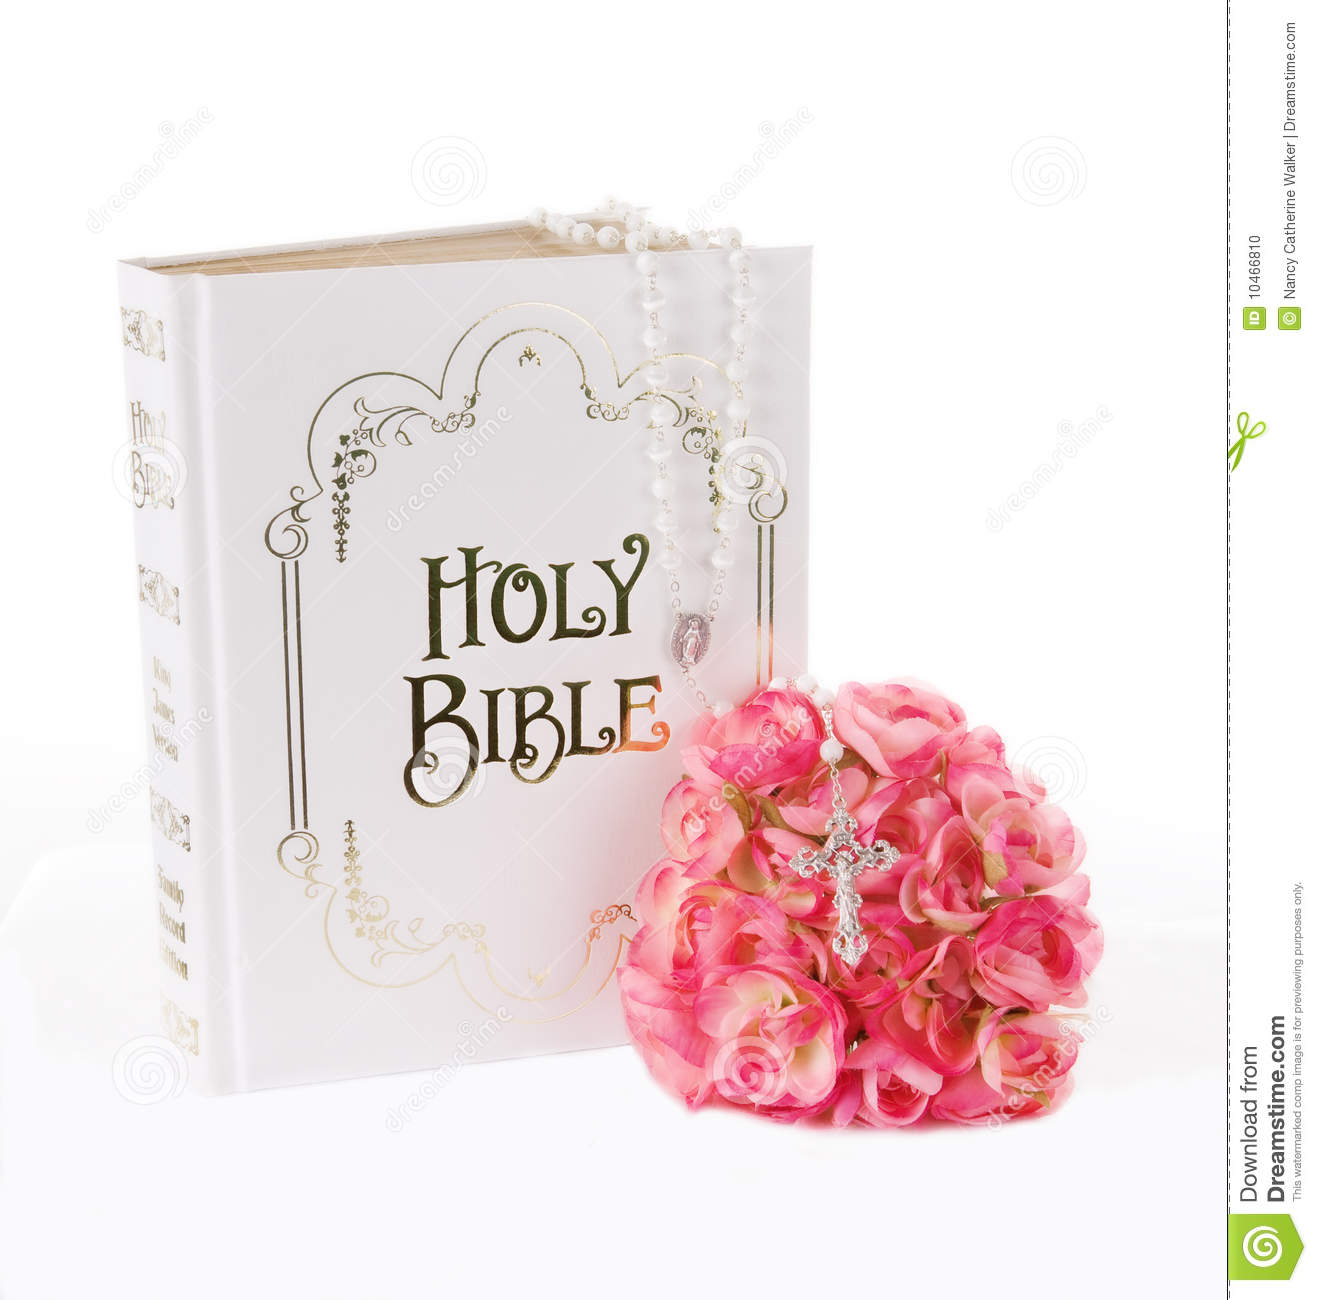 Rosary, Bible and Flowers